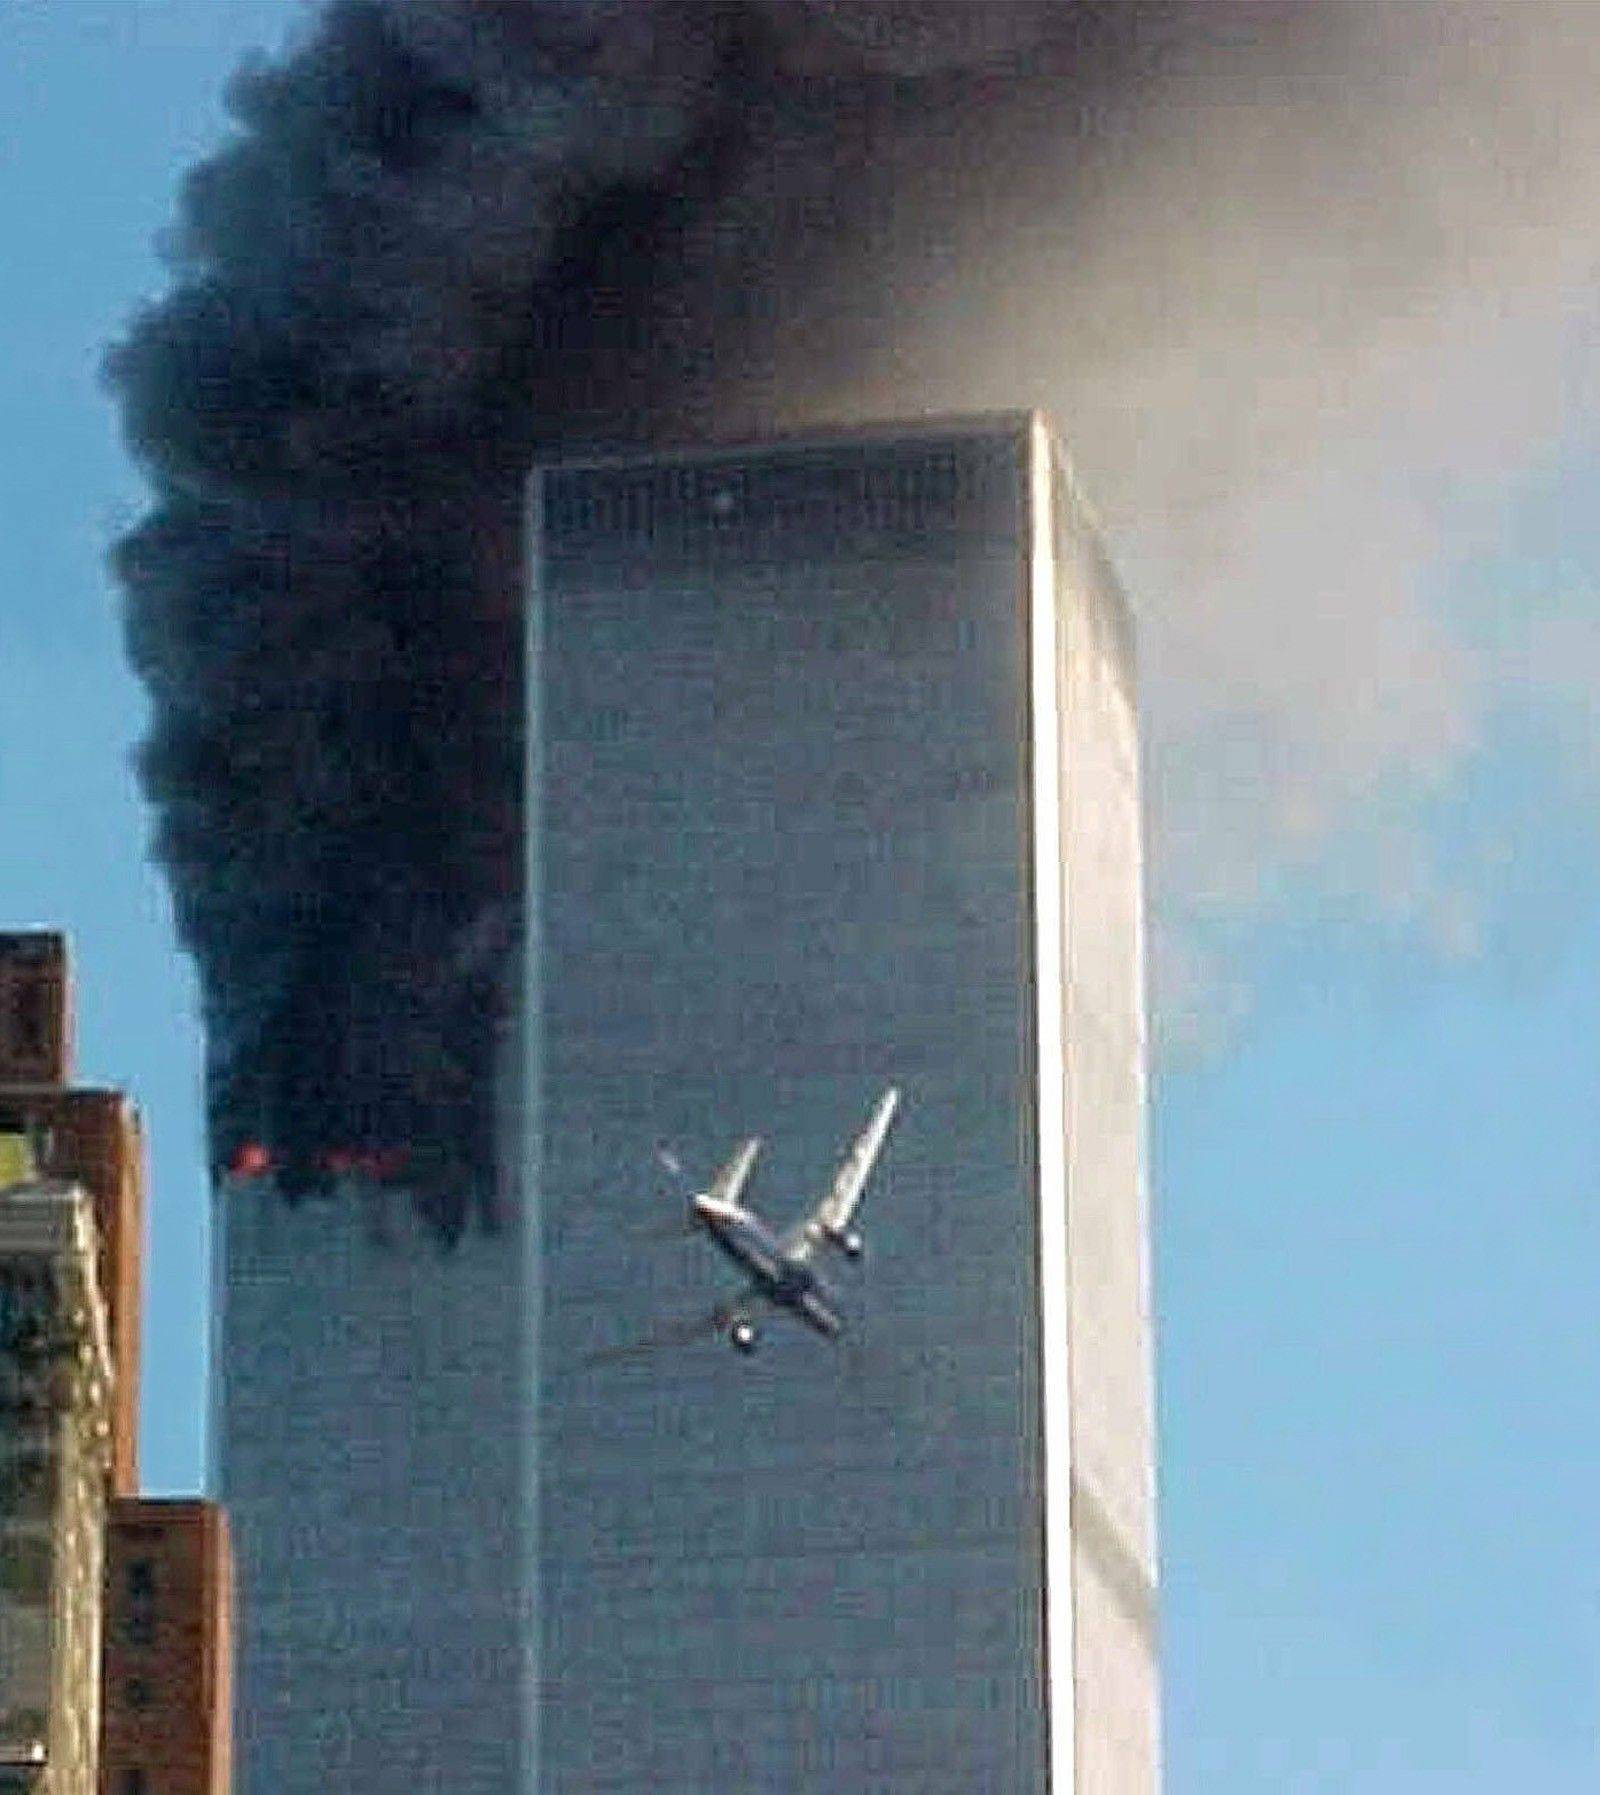 United Airlines Flight 175 approaches the south tower of the World Trade Center in New York shortly before collision as smoke billows from the north tower on Sept. 11, 2001.